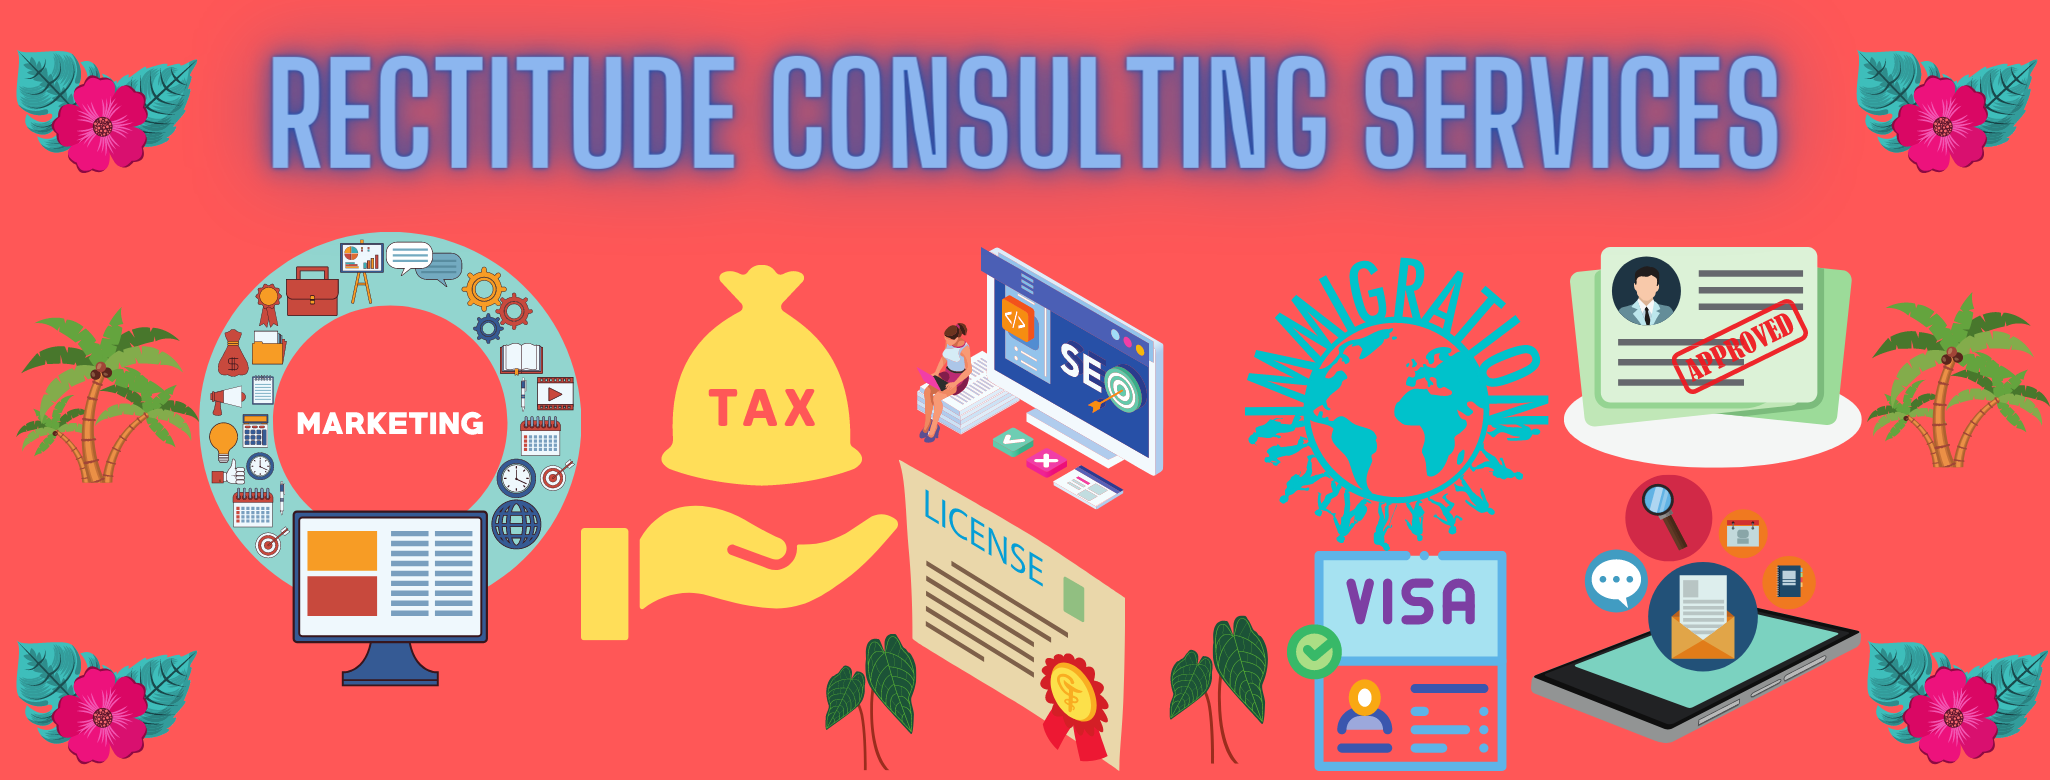 Copy of Rectitude Consulting Services